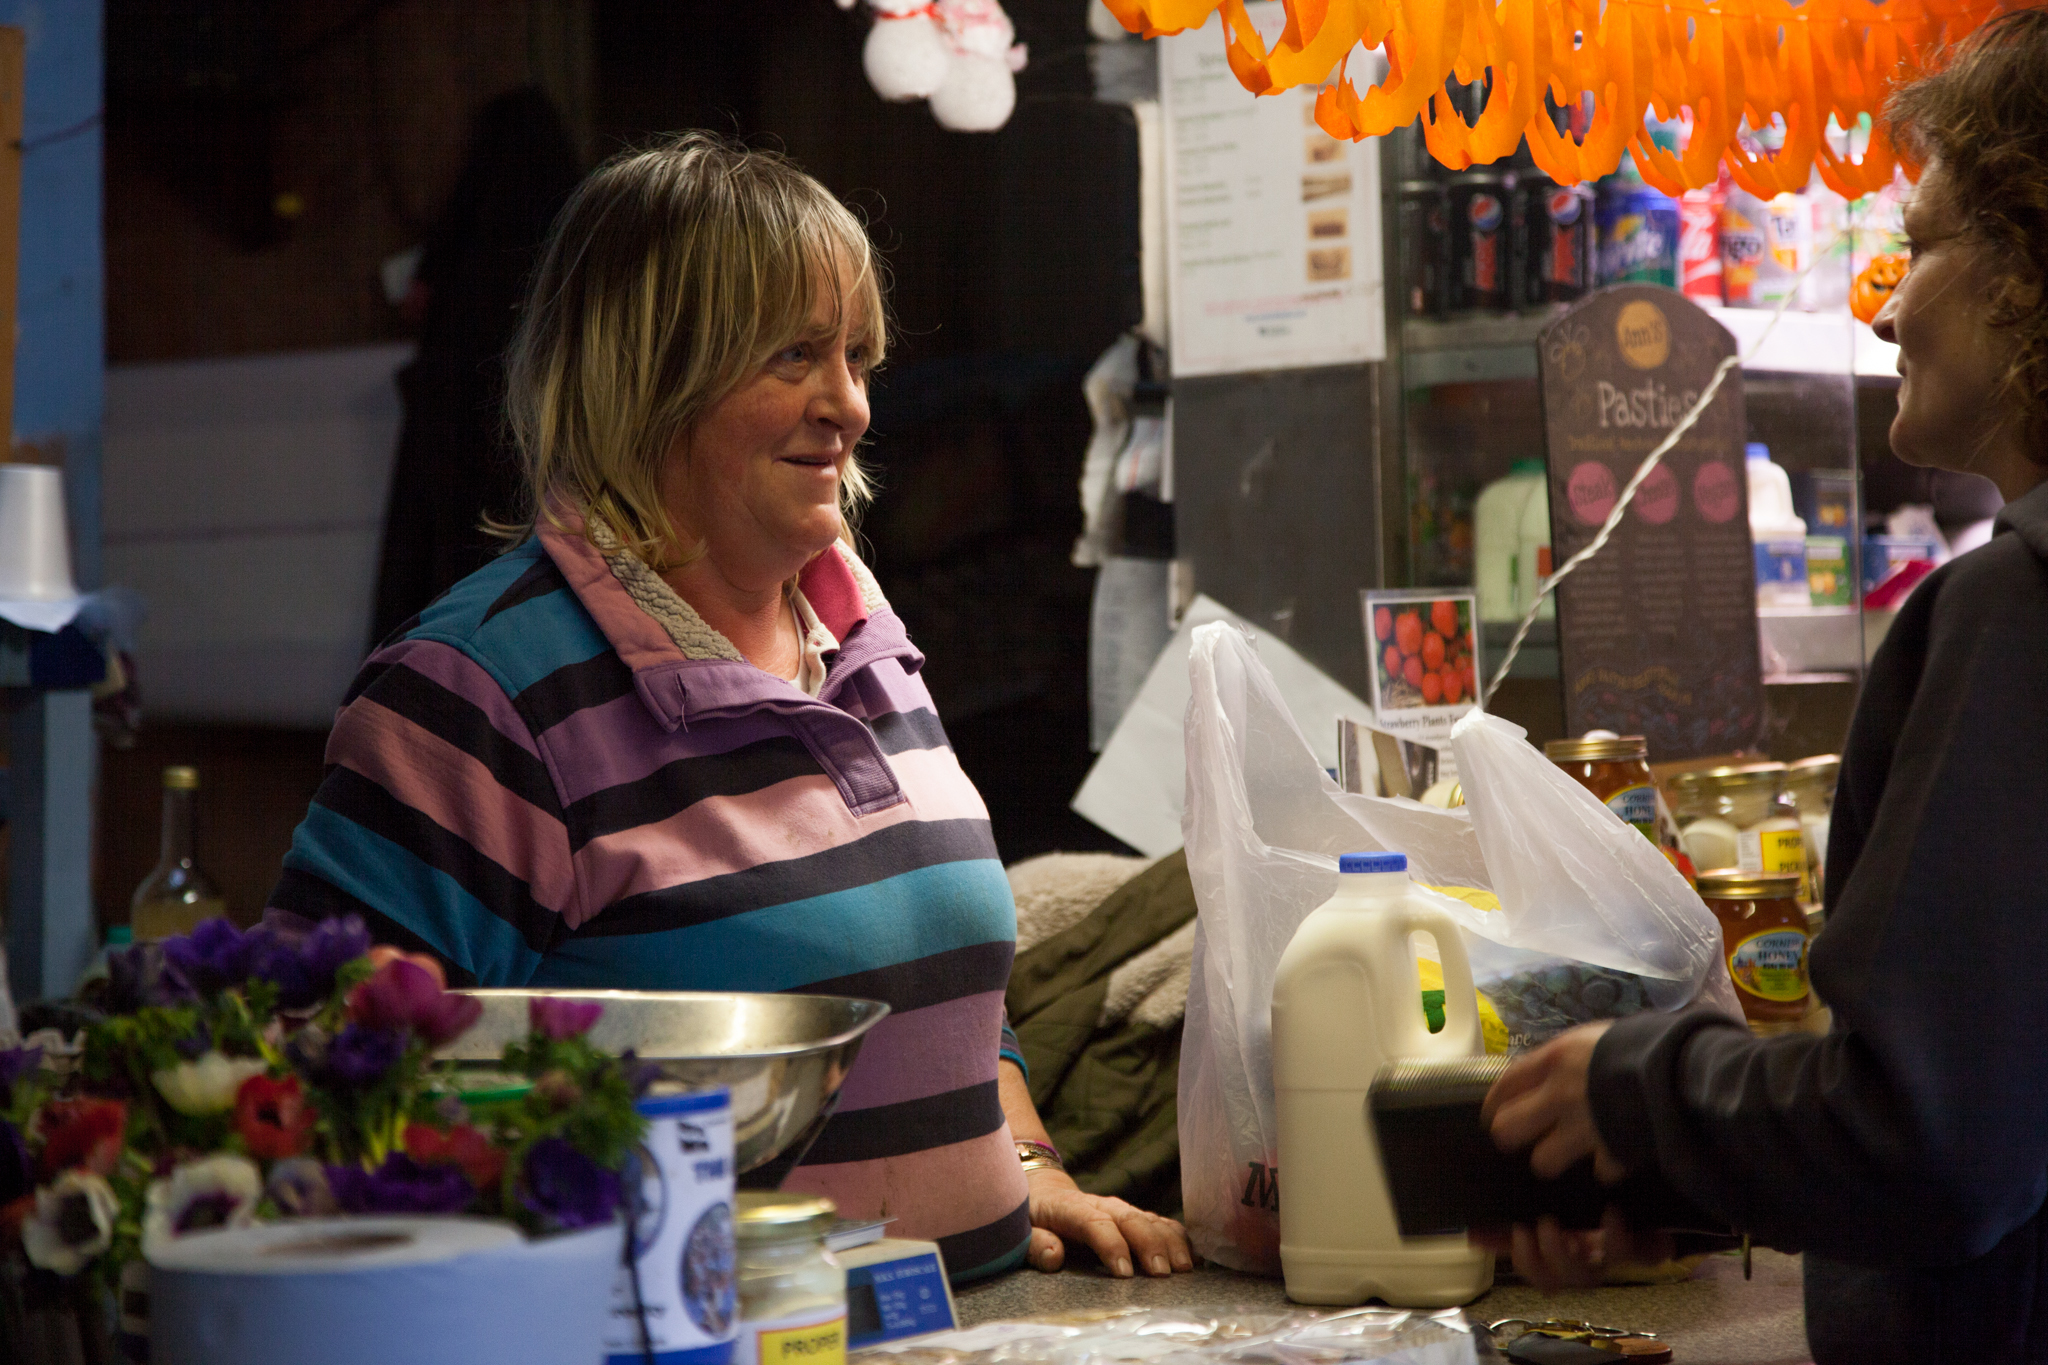 Juliette serves one of her regular costumers at her stall in Perran-ar-worthal, Cornwall. 30.10.15